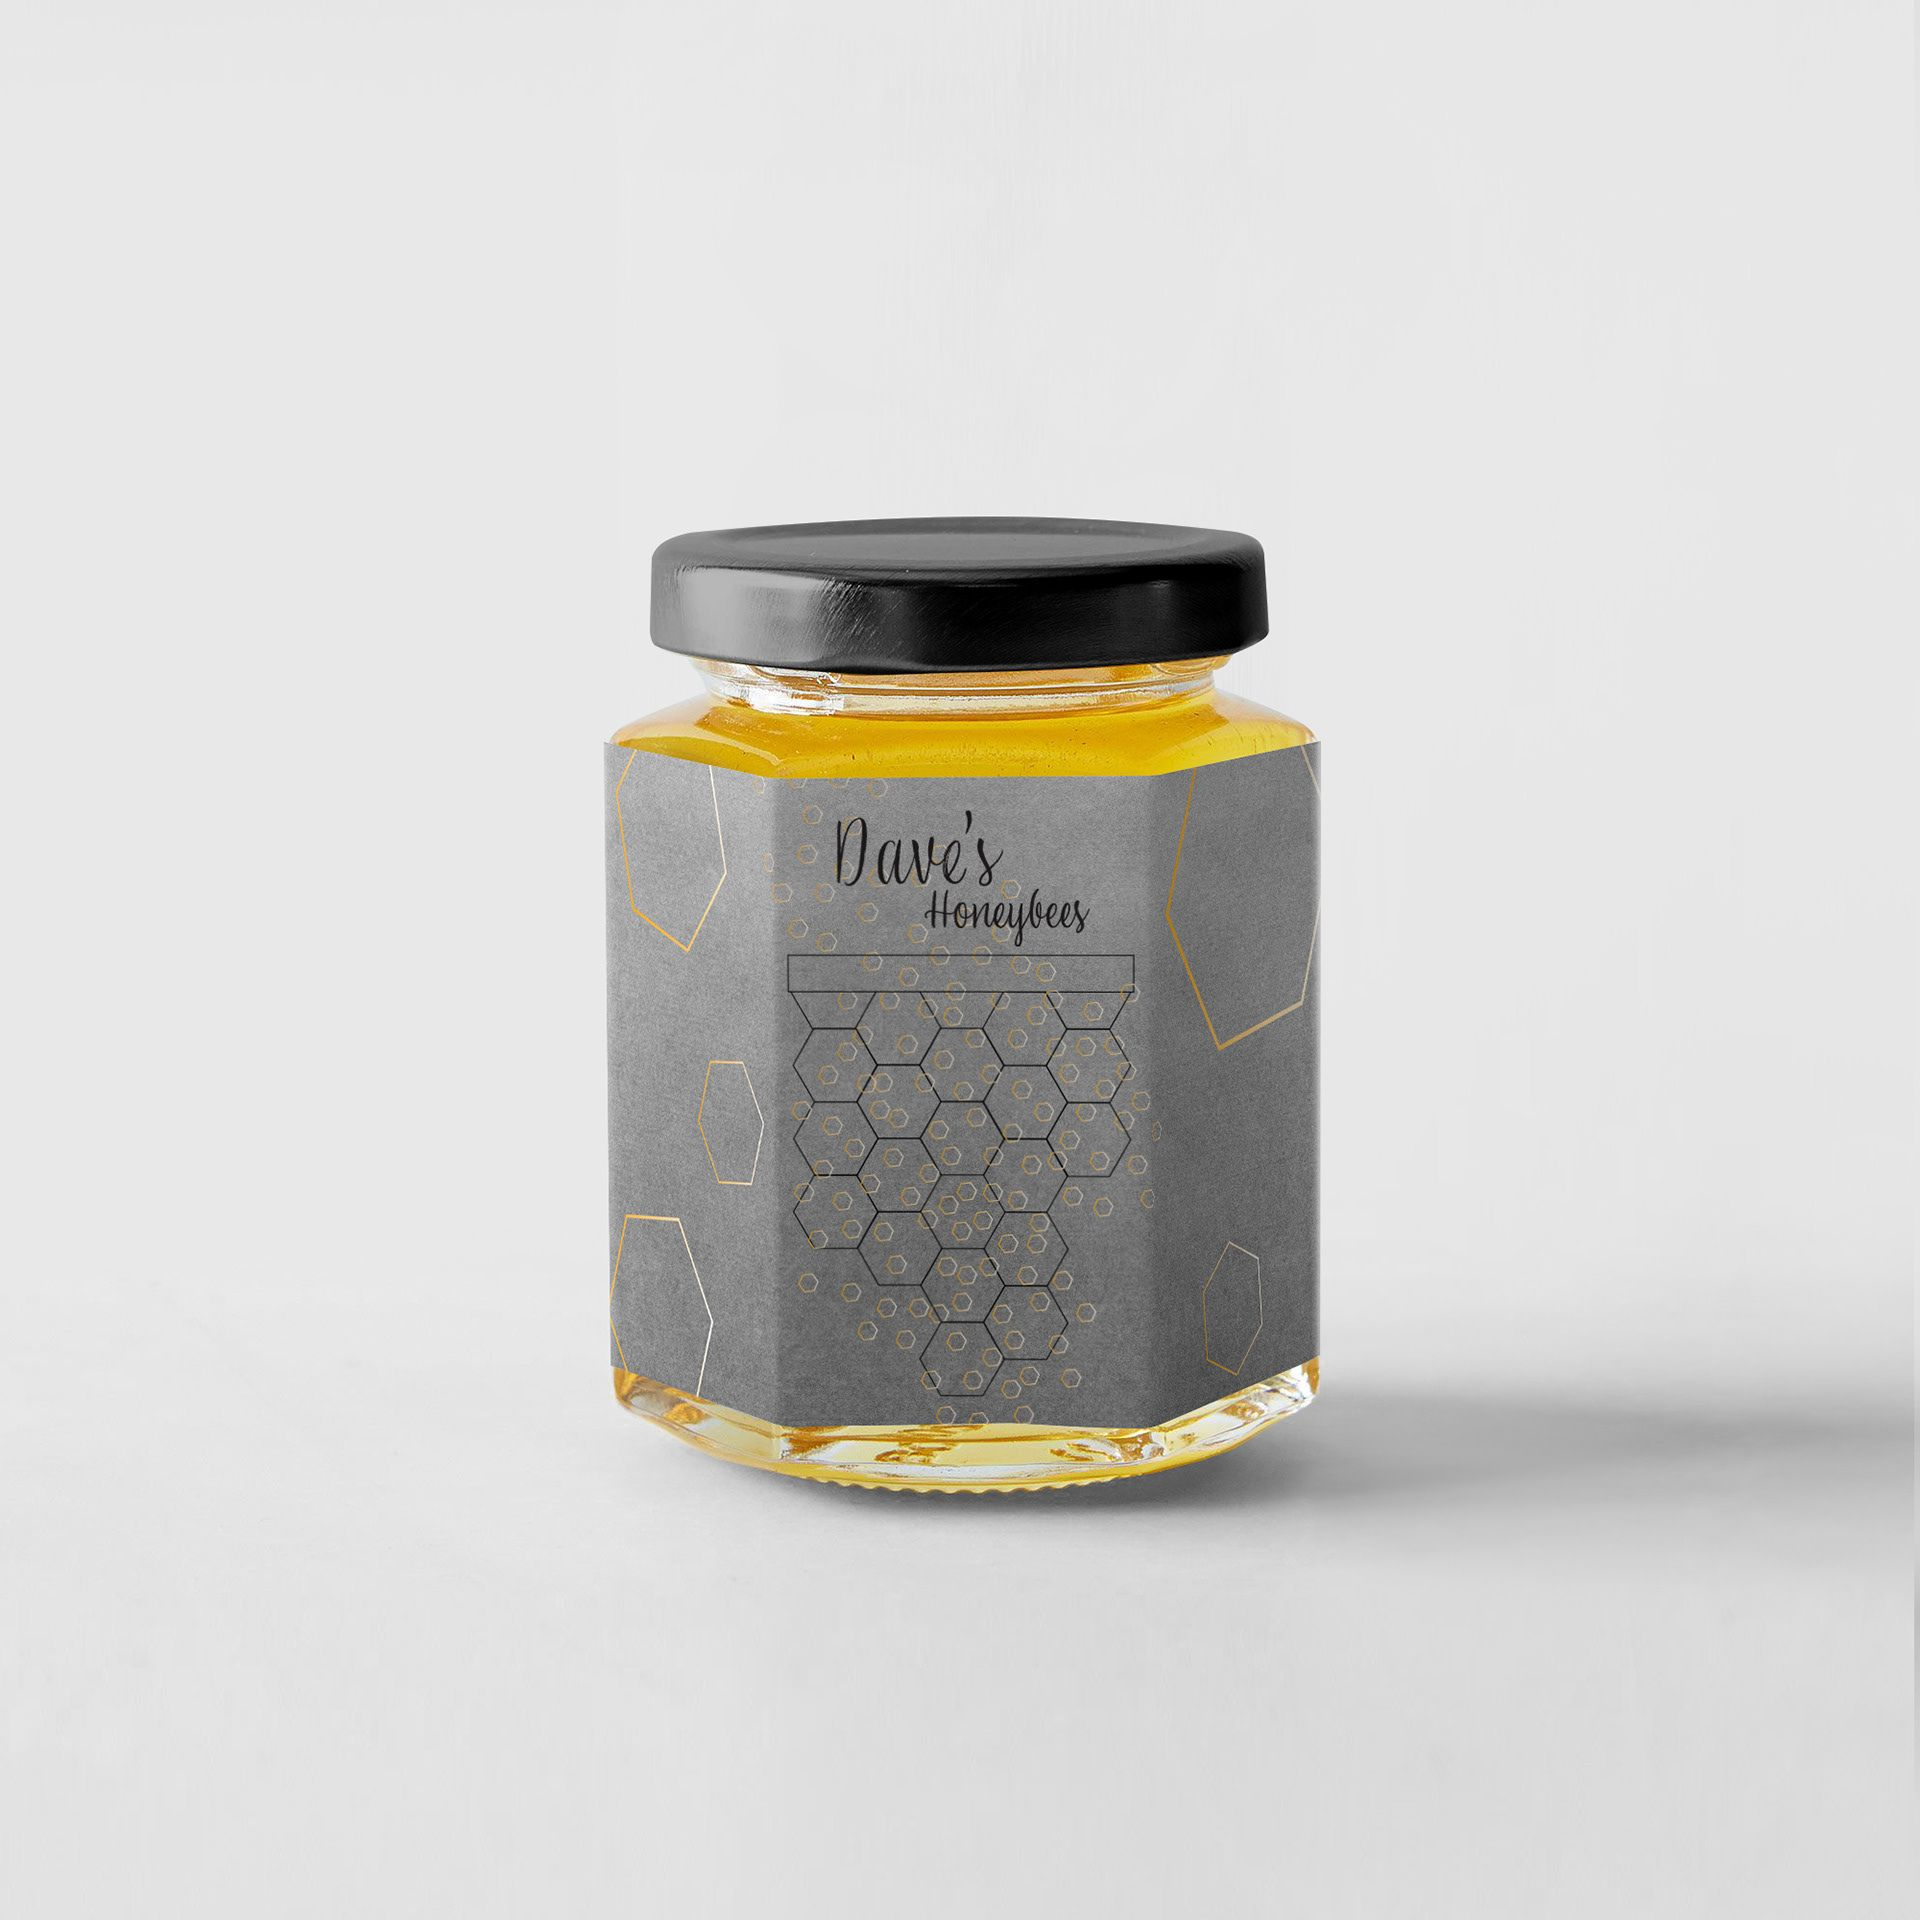 Designed jar of bee honey with honeycombs labeled Dave's Honeybees.